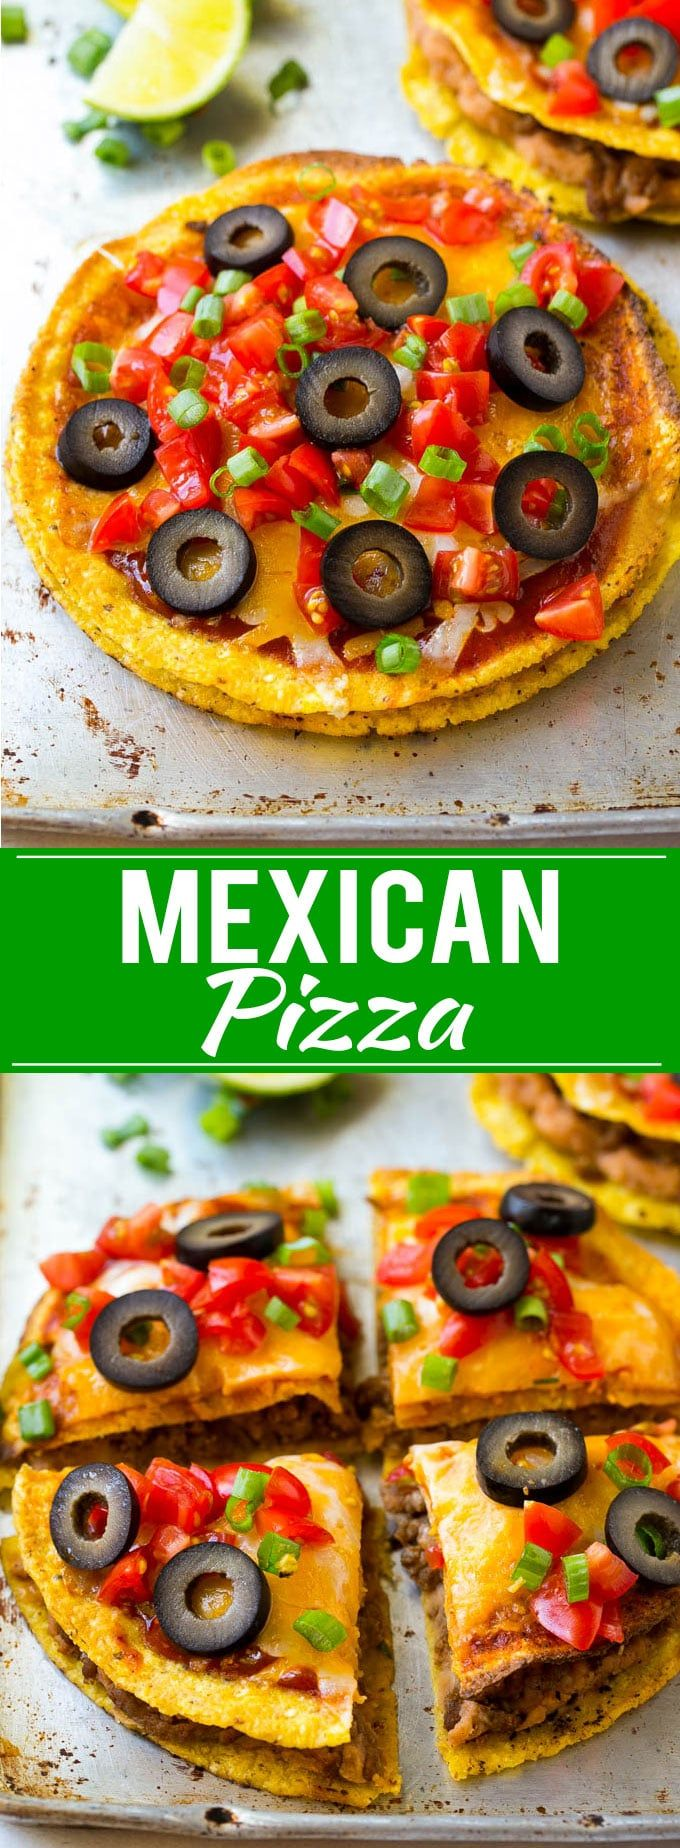 Mexican Pizza Recipe | Tostada Recipe | Taco Bell Copycat Recipe | Mexican Food Recipe